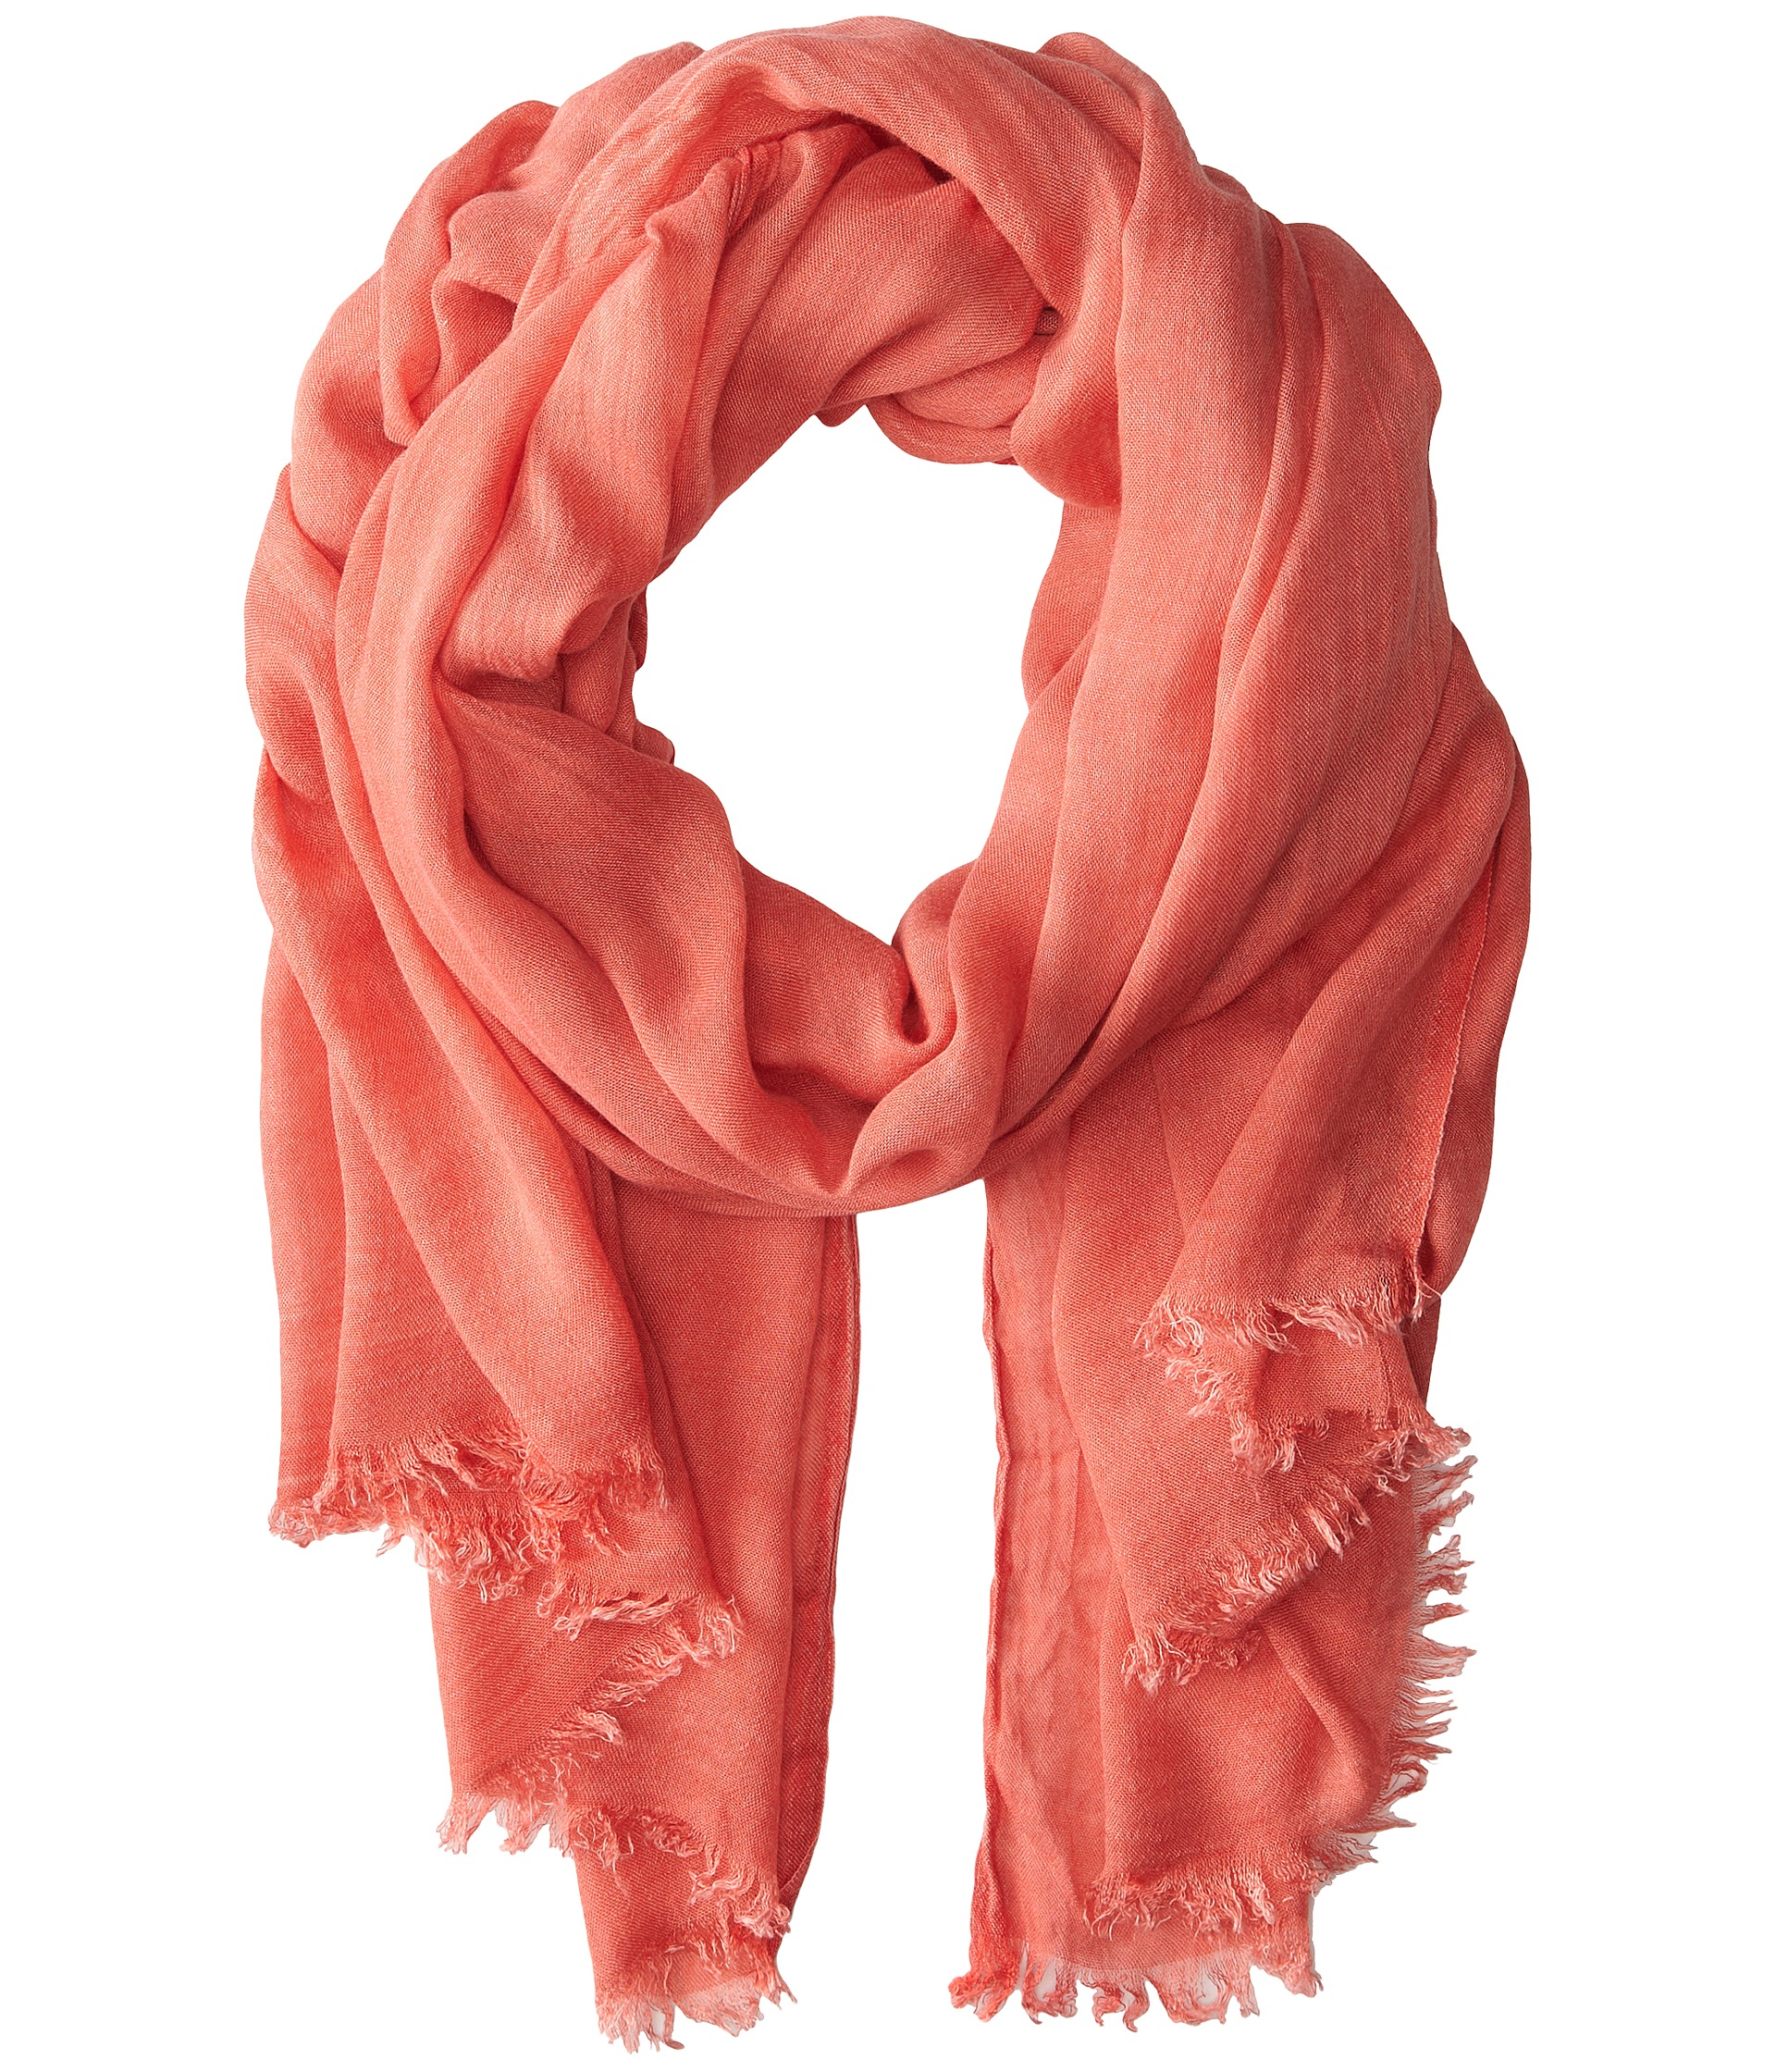 san diego hat company bss1394 viscose scarf w distressed